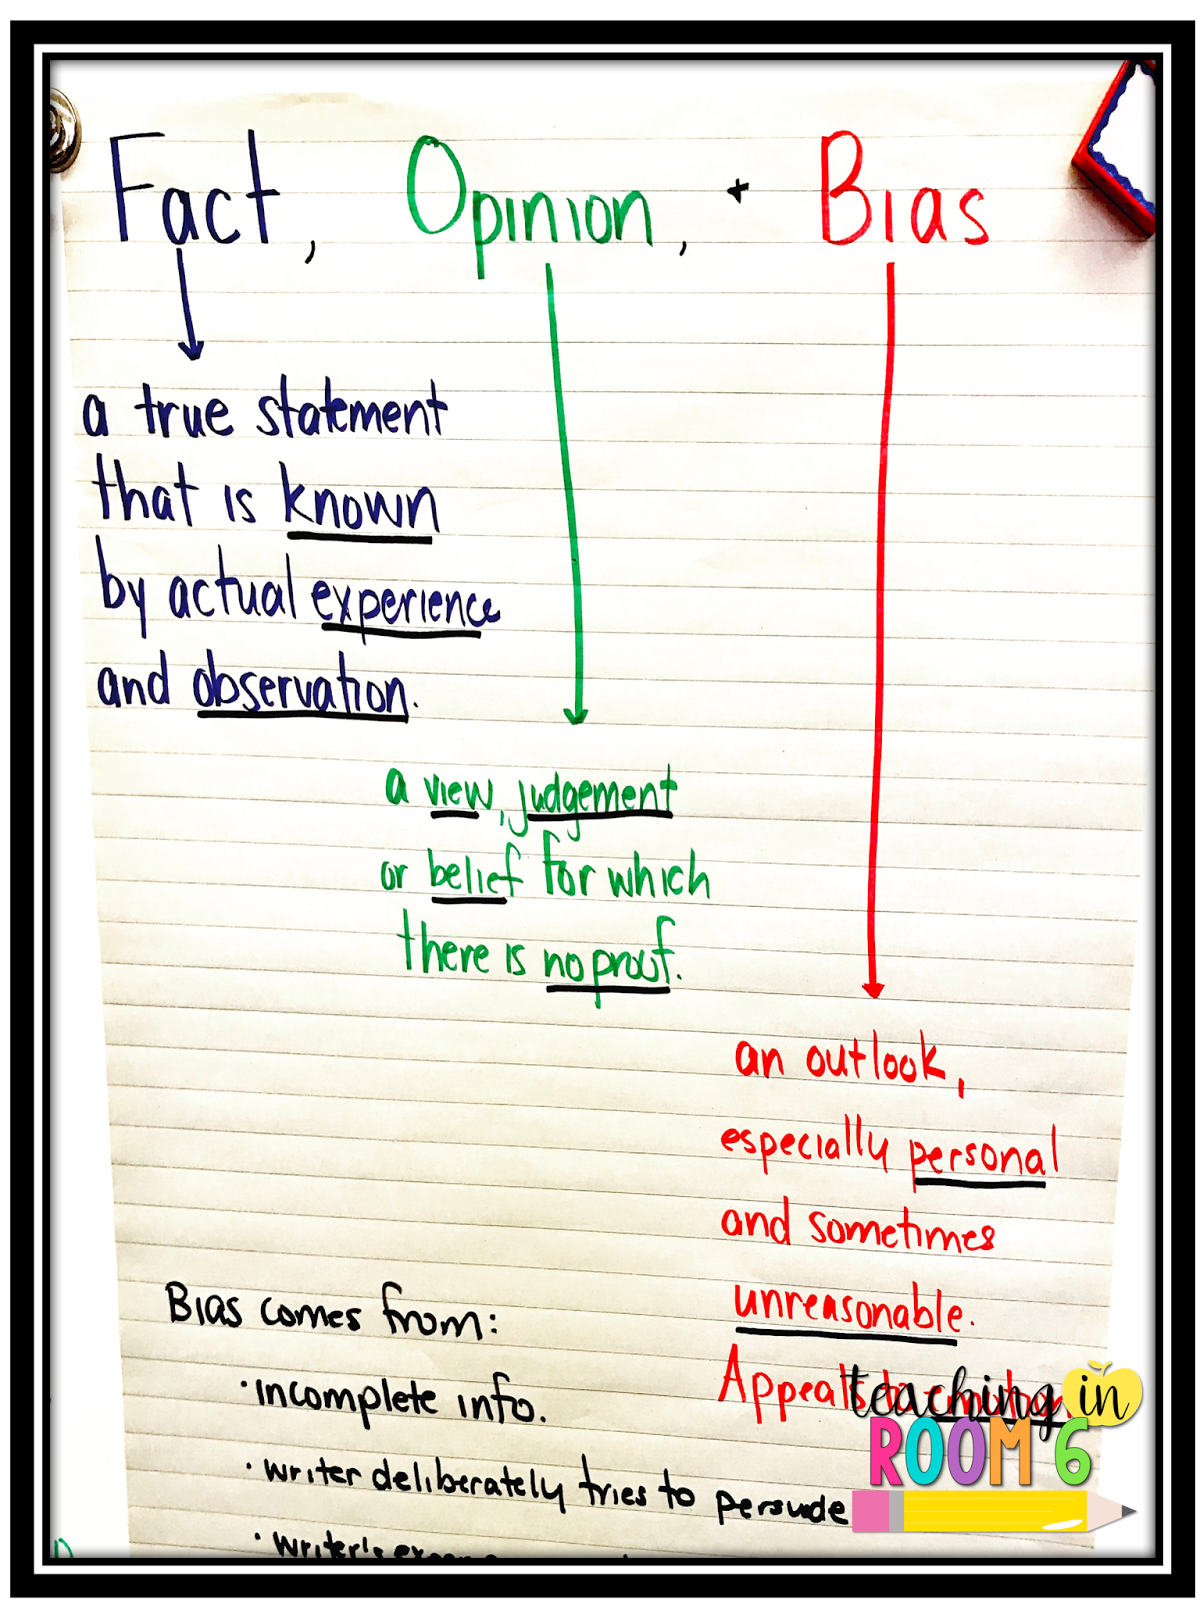 worksheet Fact Opinion Bias Worksheet truth and bias in the boston massacre middle school literacy fact opinion teaching room 6